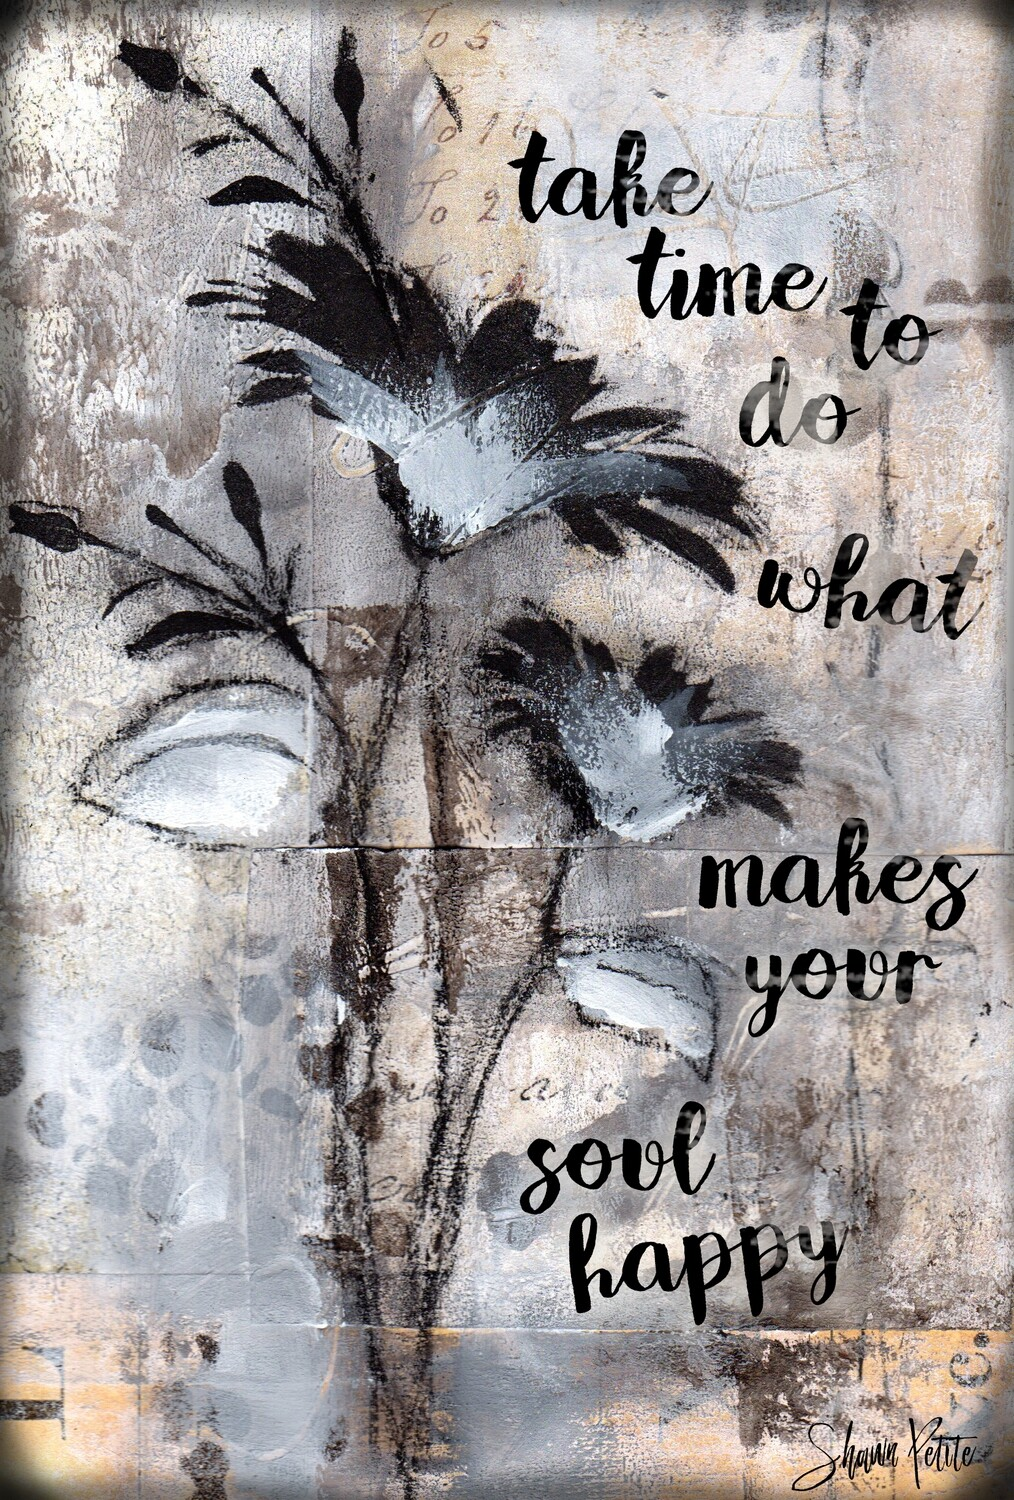 """""""Take time to do what makes your soul happy"""" Print on Wood 5x7 Overstock"""